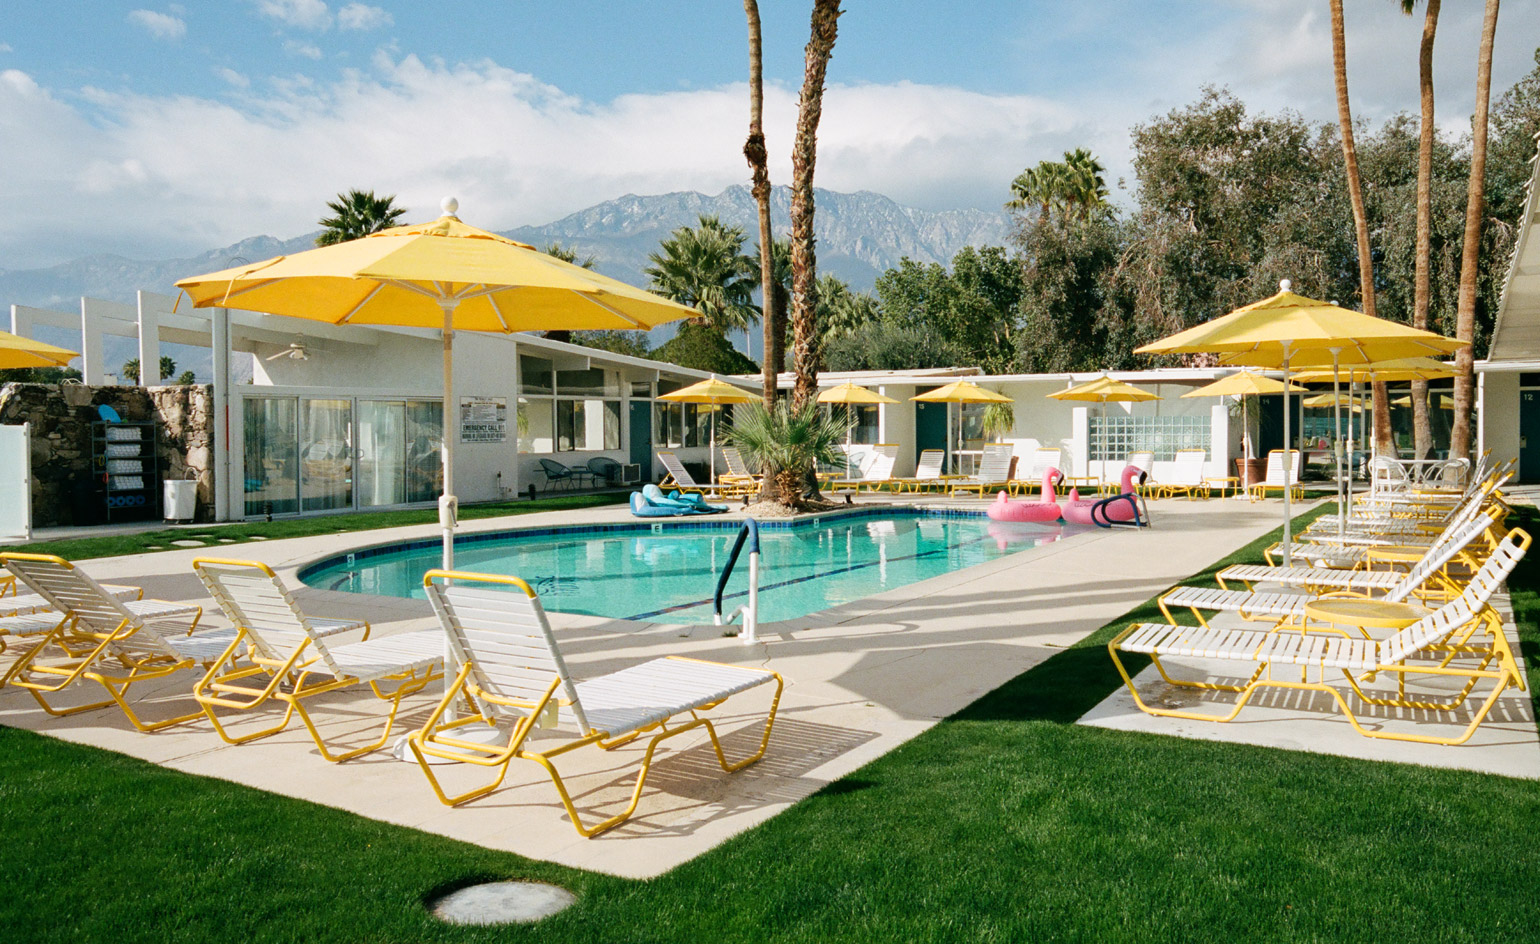 the 7 best palm springs hotels for 2017 | wallpaper*